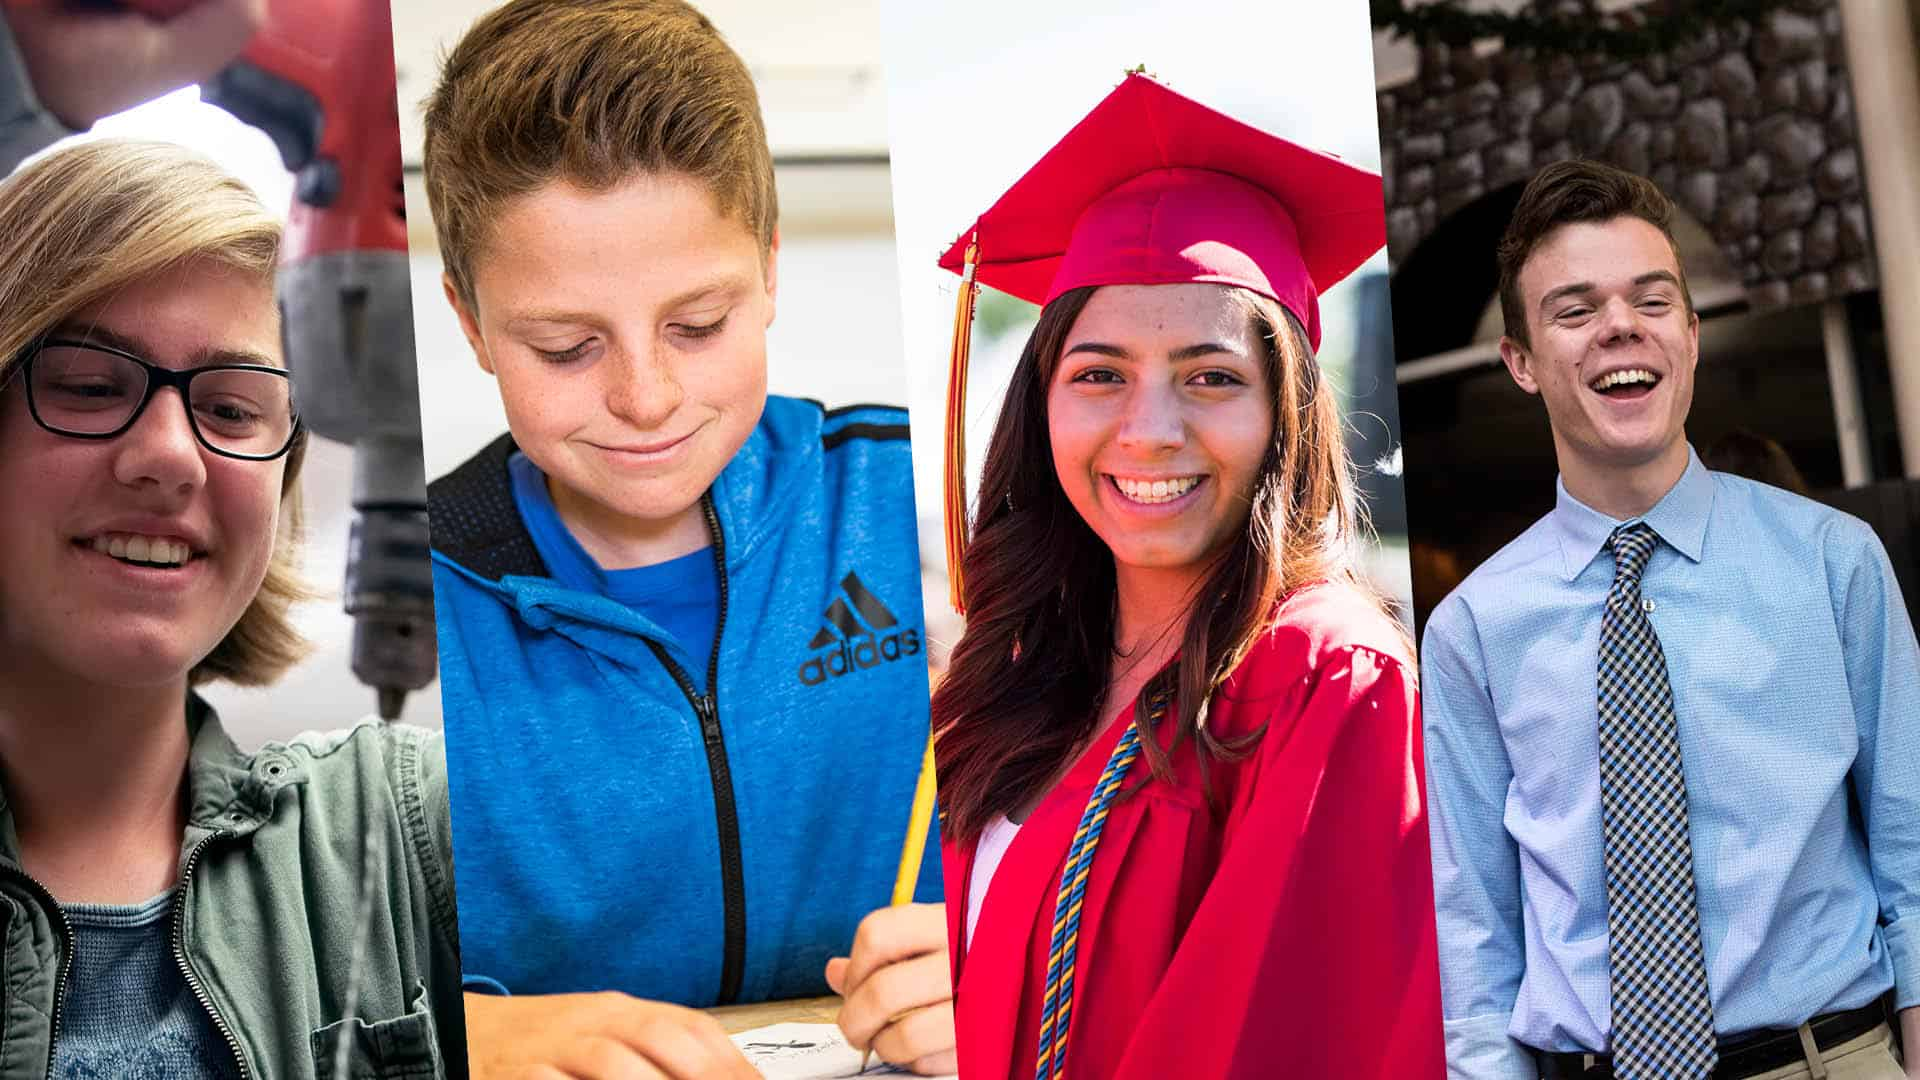 Four students from St. Vrain Valley Schools